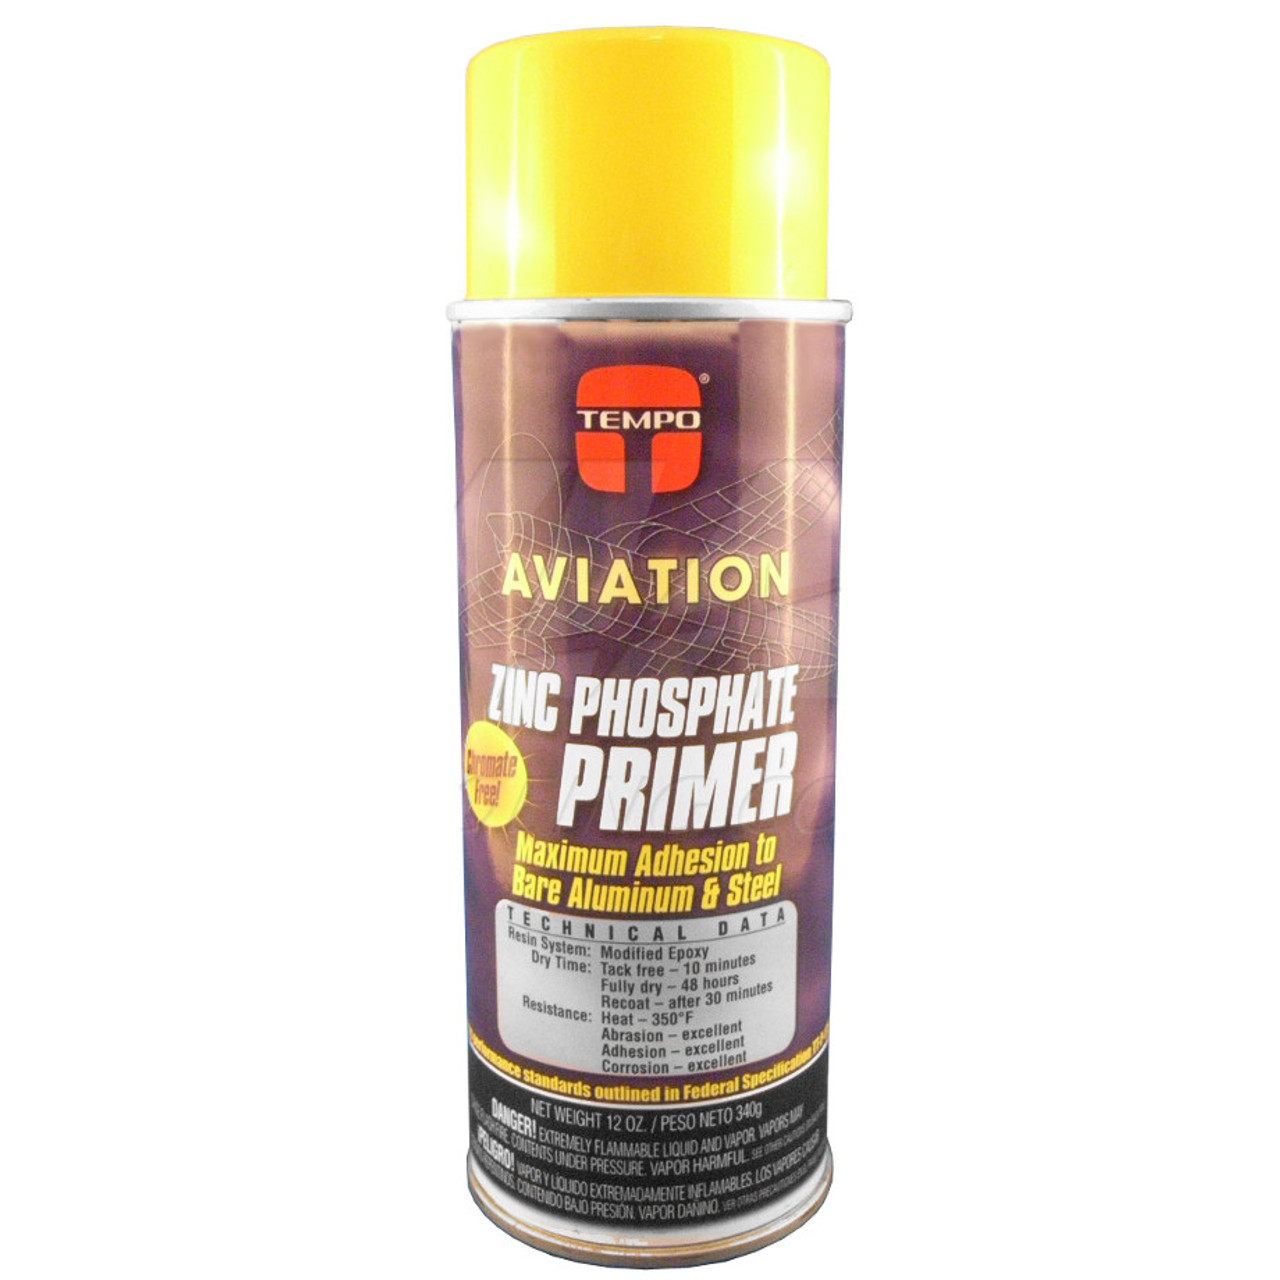 Tempo Aviation Zinc Phosphate Primer